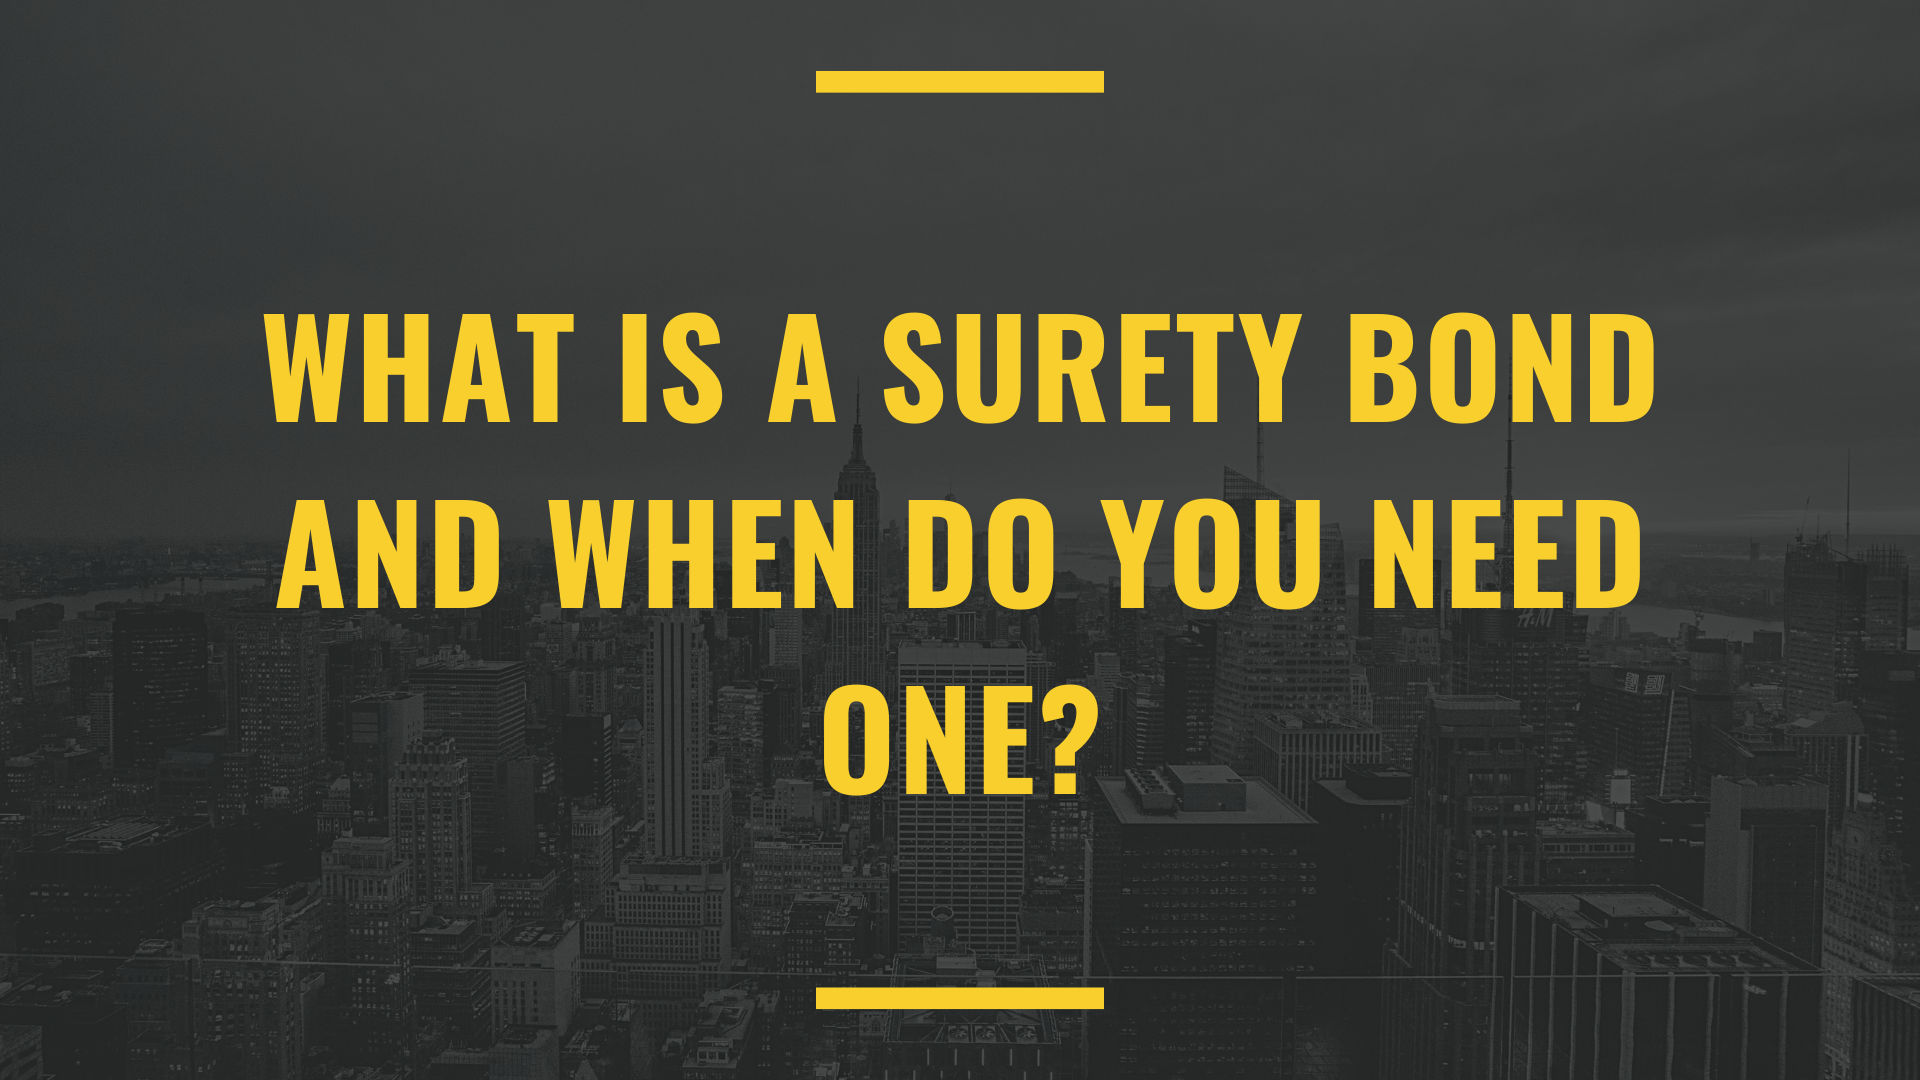 surety bond - what is a surety bond - top view of buildings